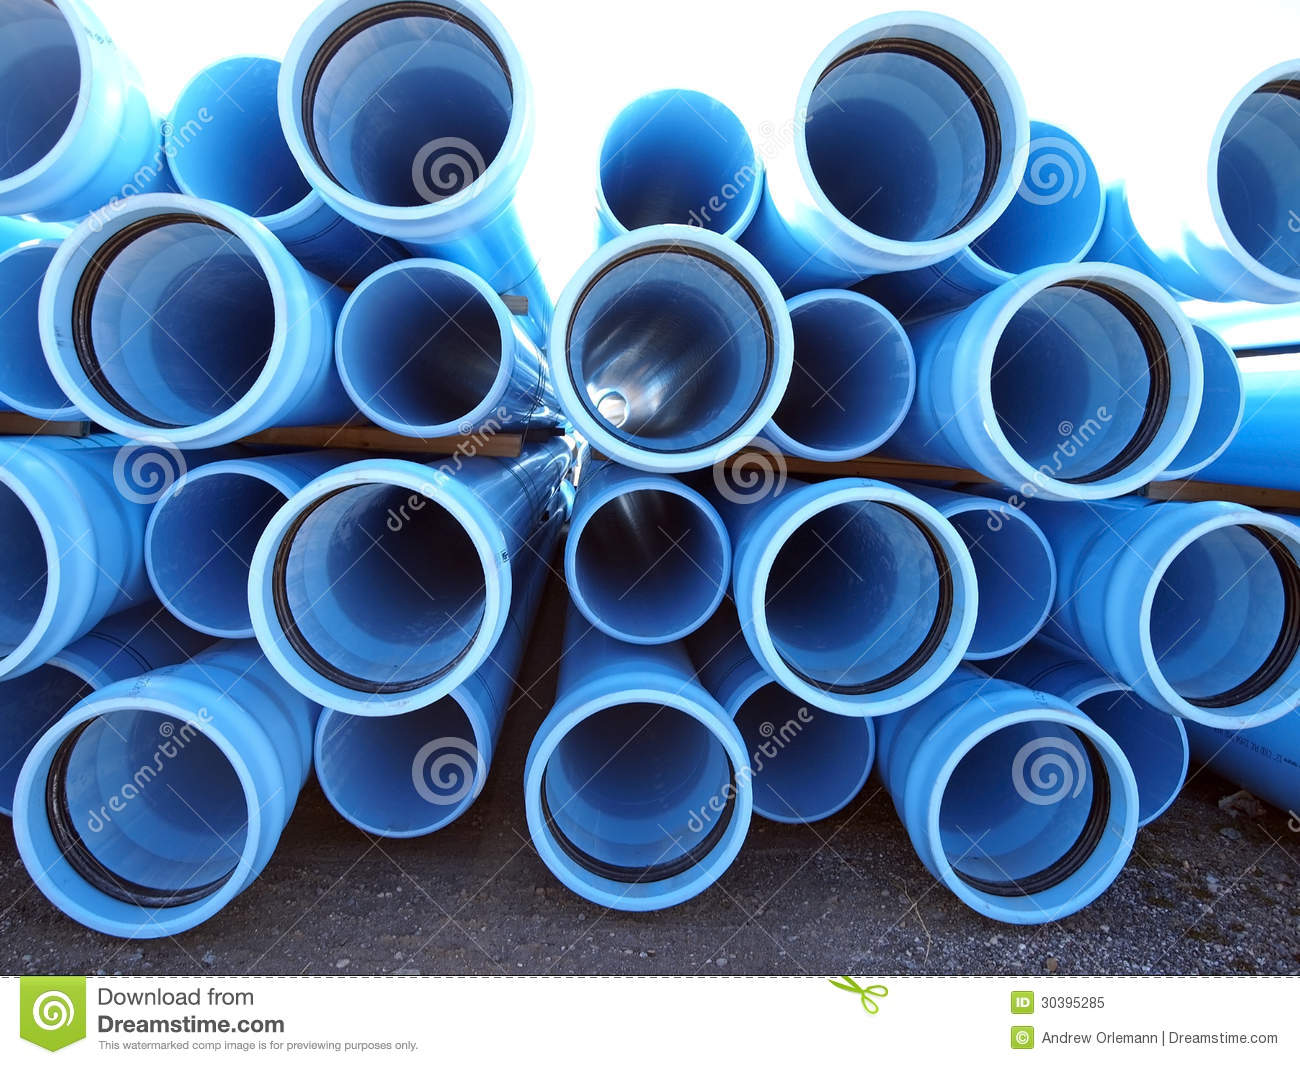 Blue plastic water pipe acpfoto for Plastic water pipe